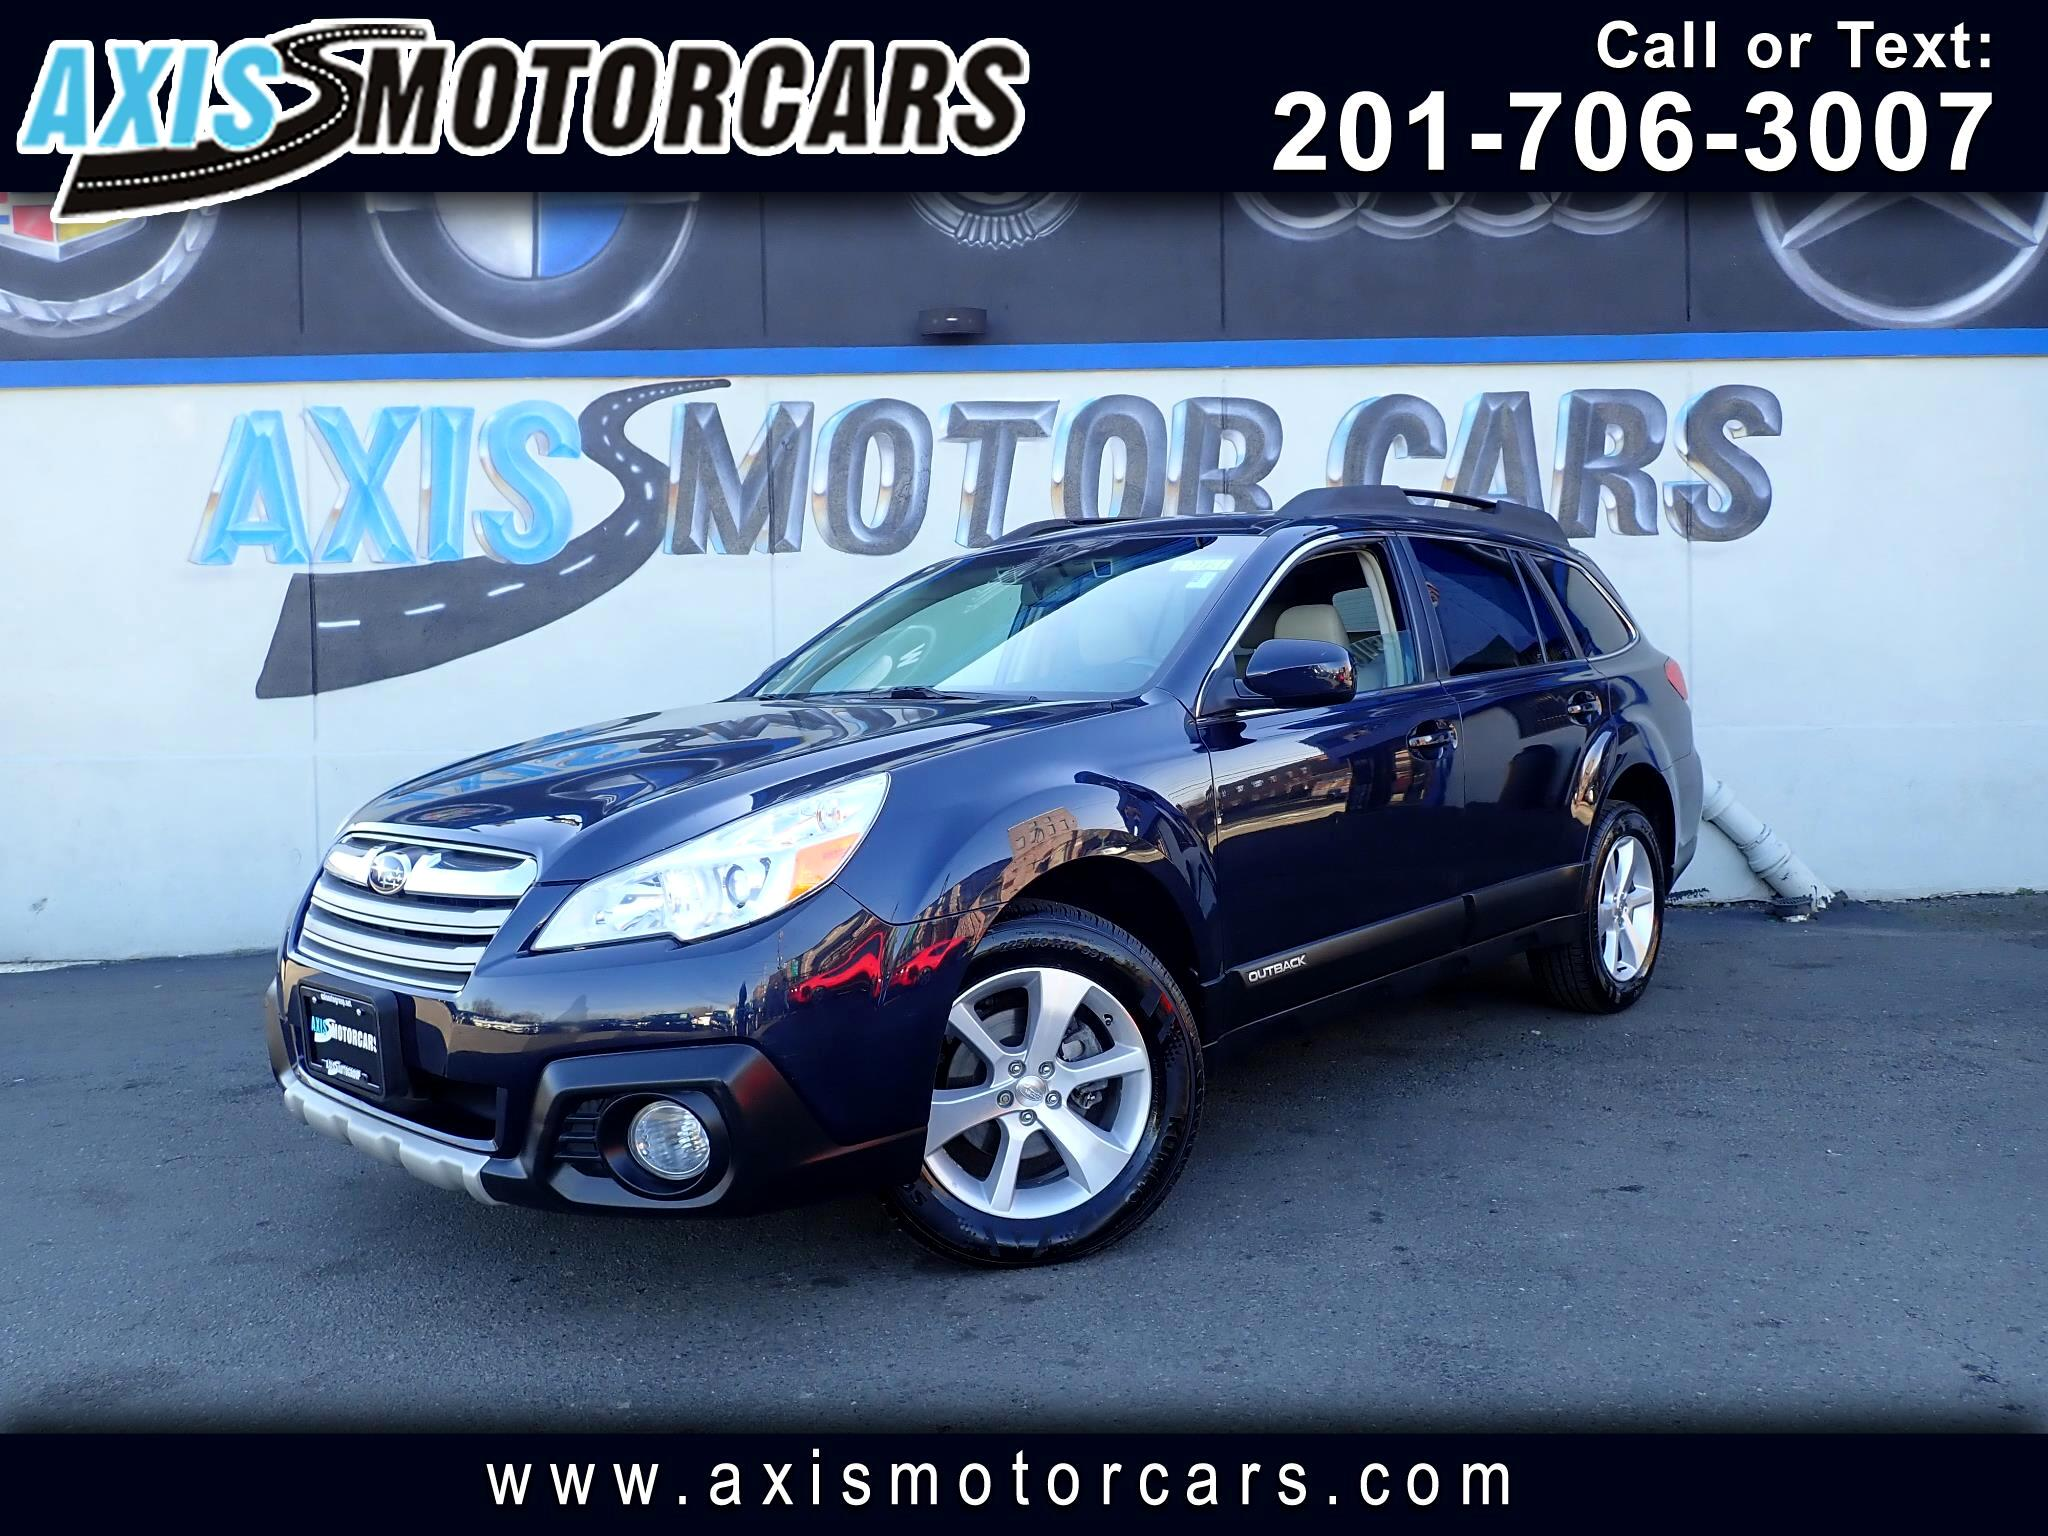 2014 Subaru Outback w/Navigation Bakup Camera Drivers assist